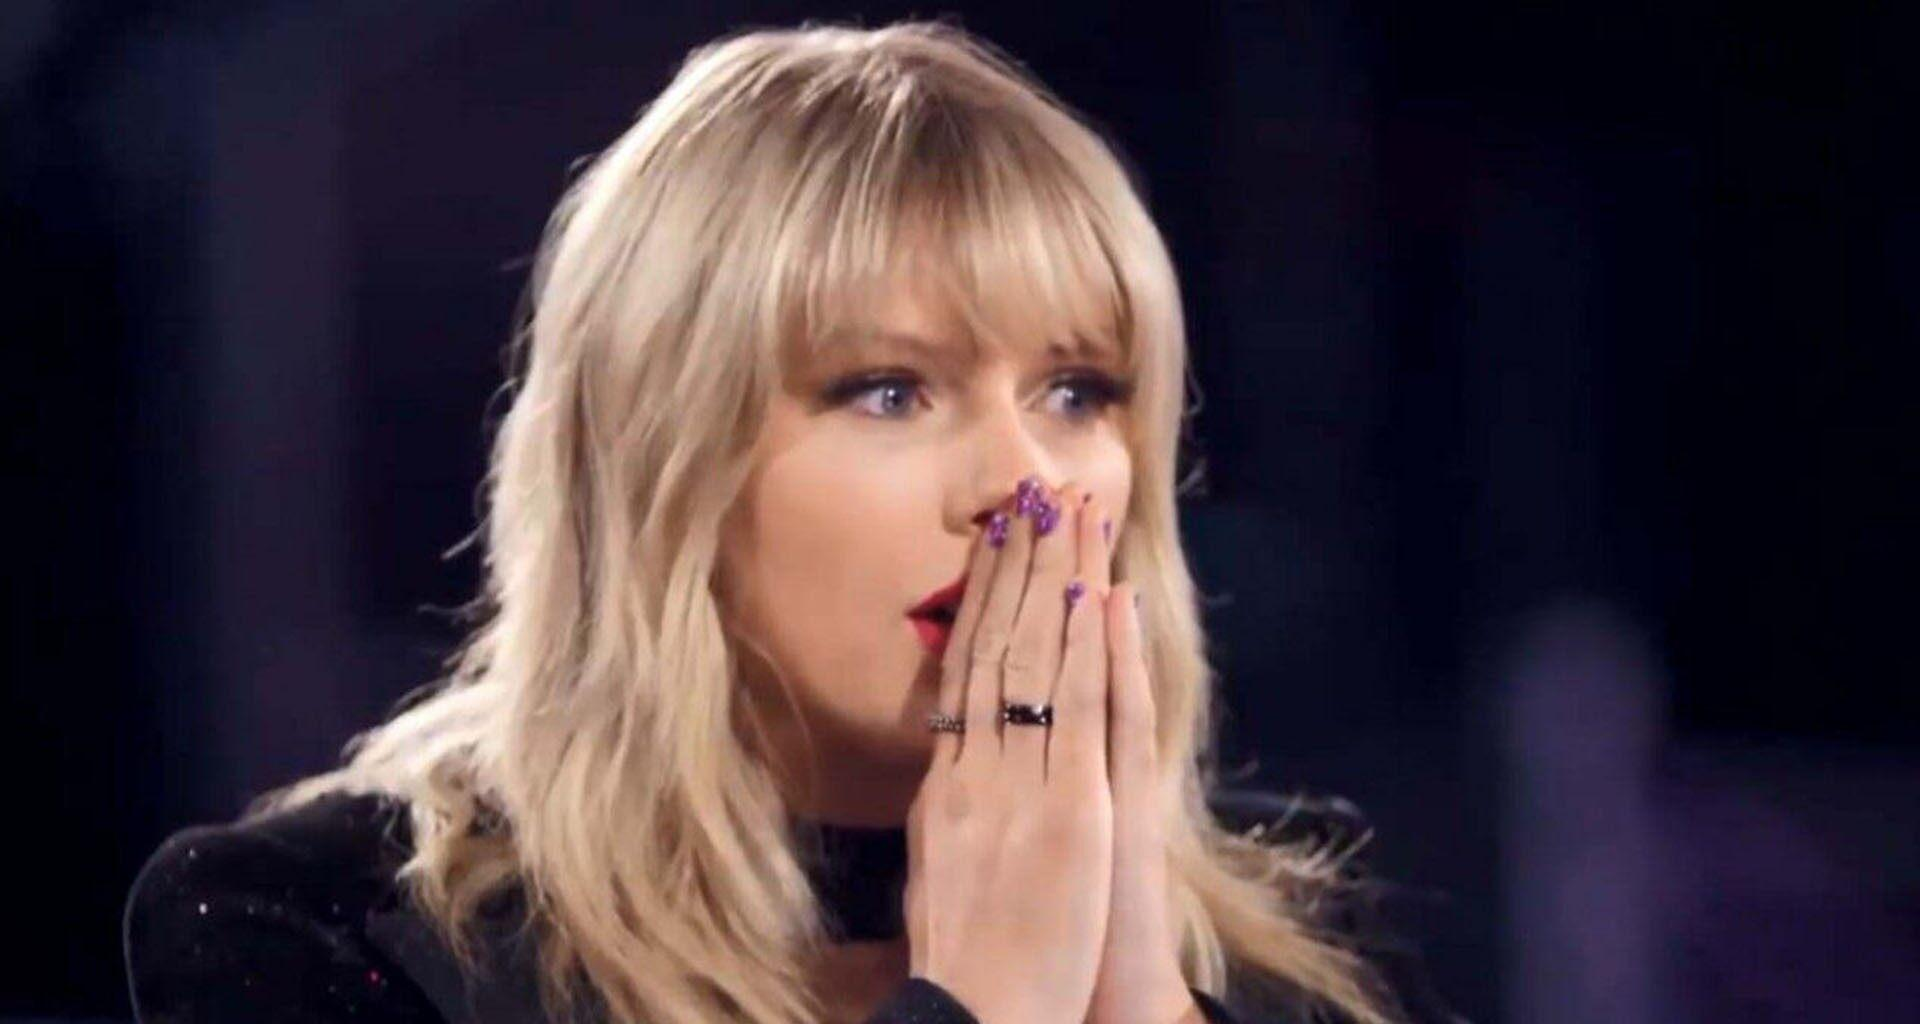 Taylor Swift Can Perform Her Oldies At AMA's Says Big Machine Label Group And Dick Clark Productions